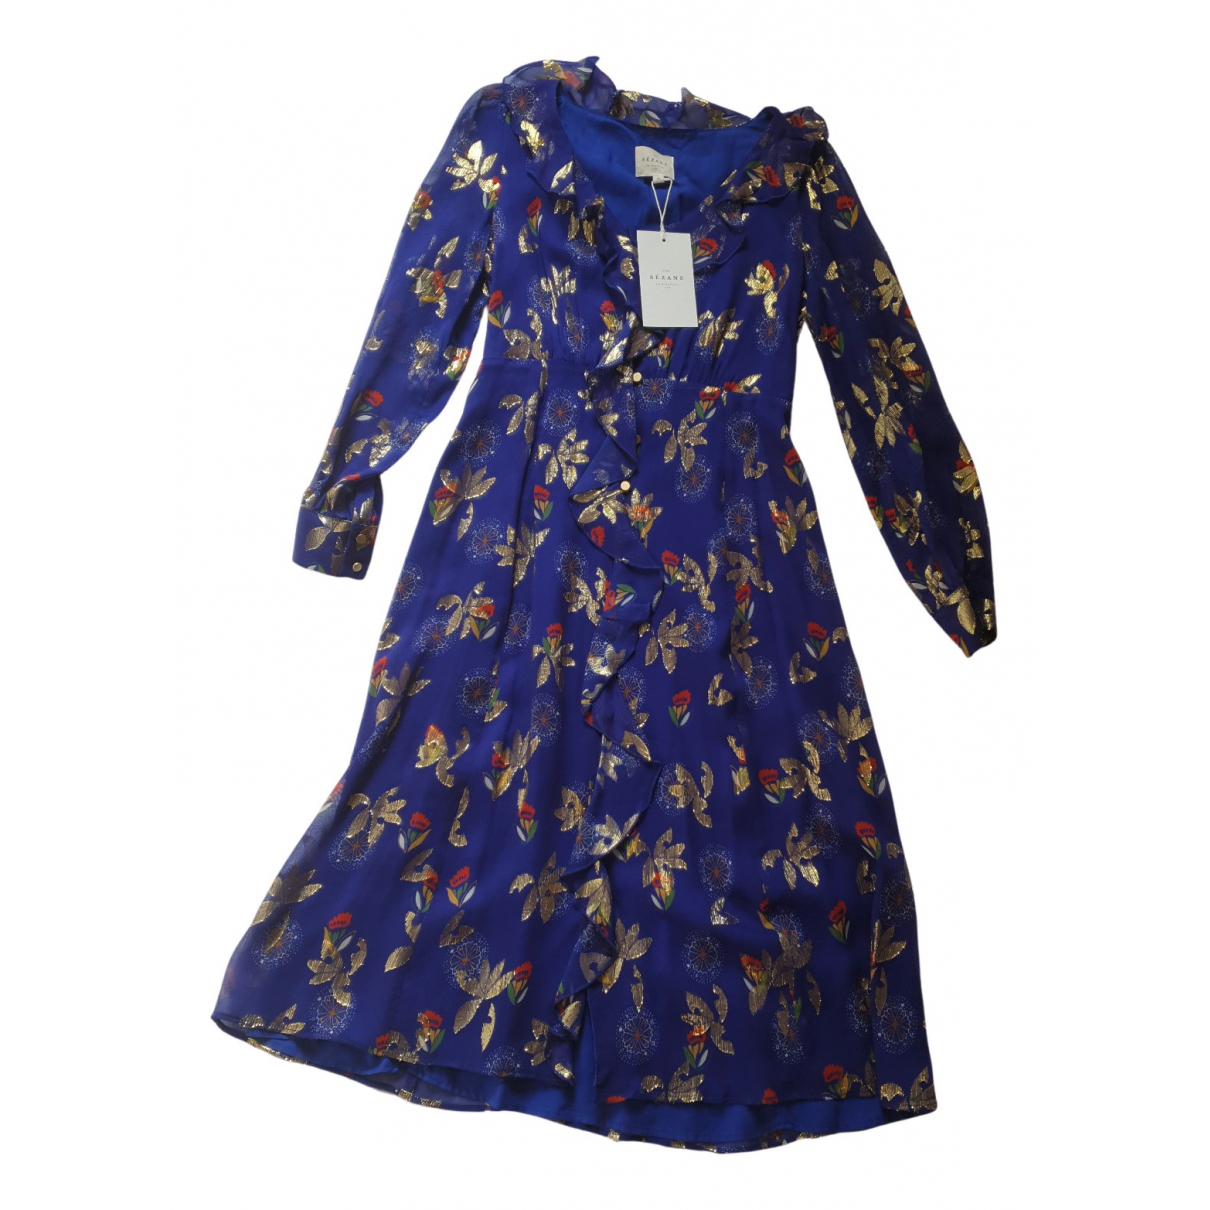 Sézane Spring Summer 2020 Blue Silk dress for Women 36 FR